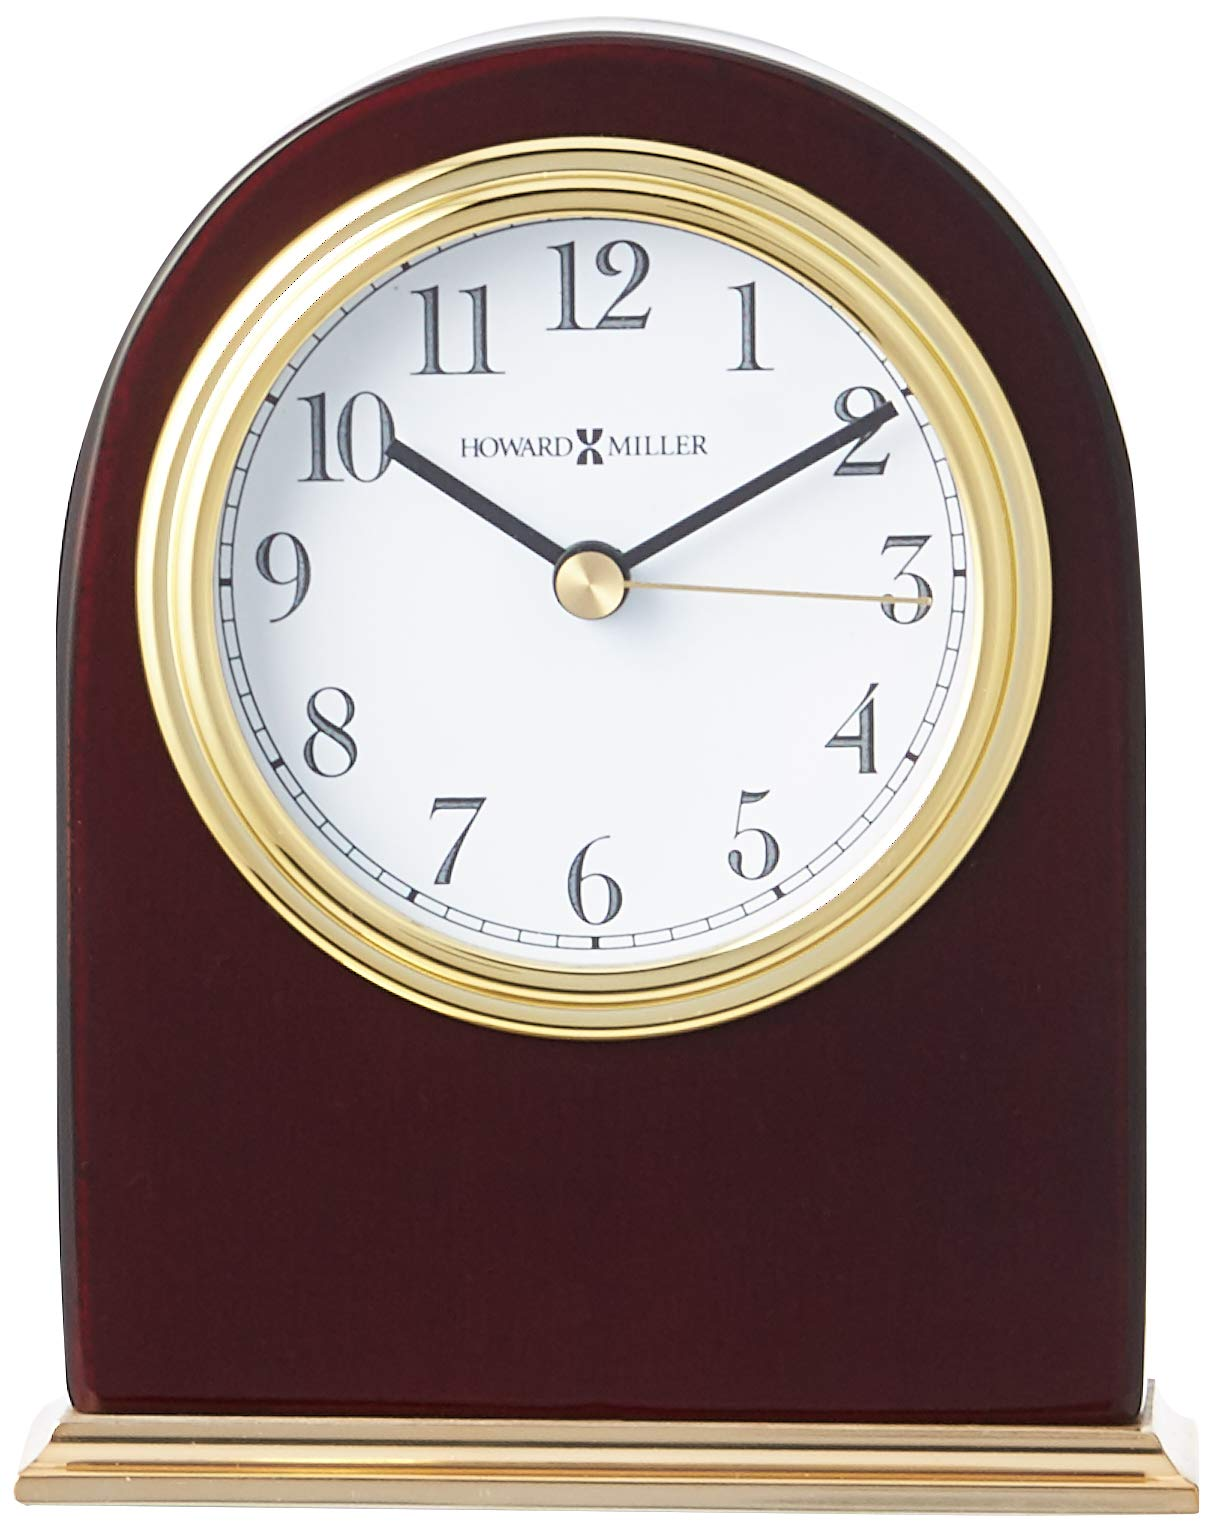 Howard Miller 645-446 Monroe Table Clock by Howard Miller (Image #1)